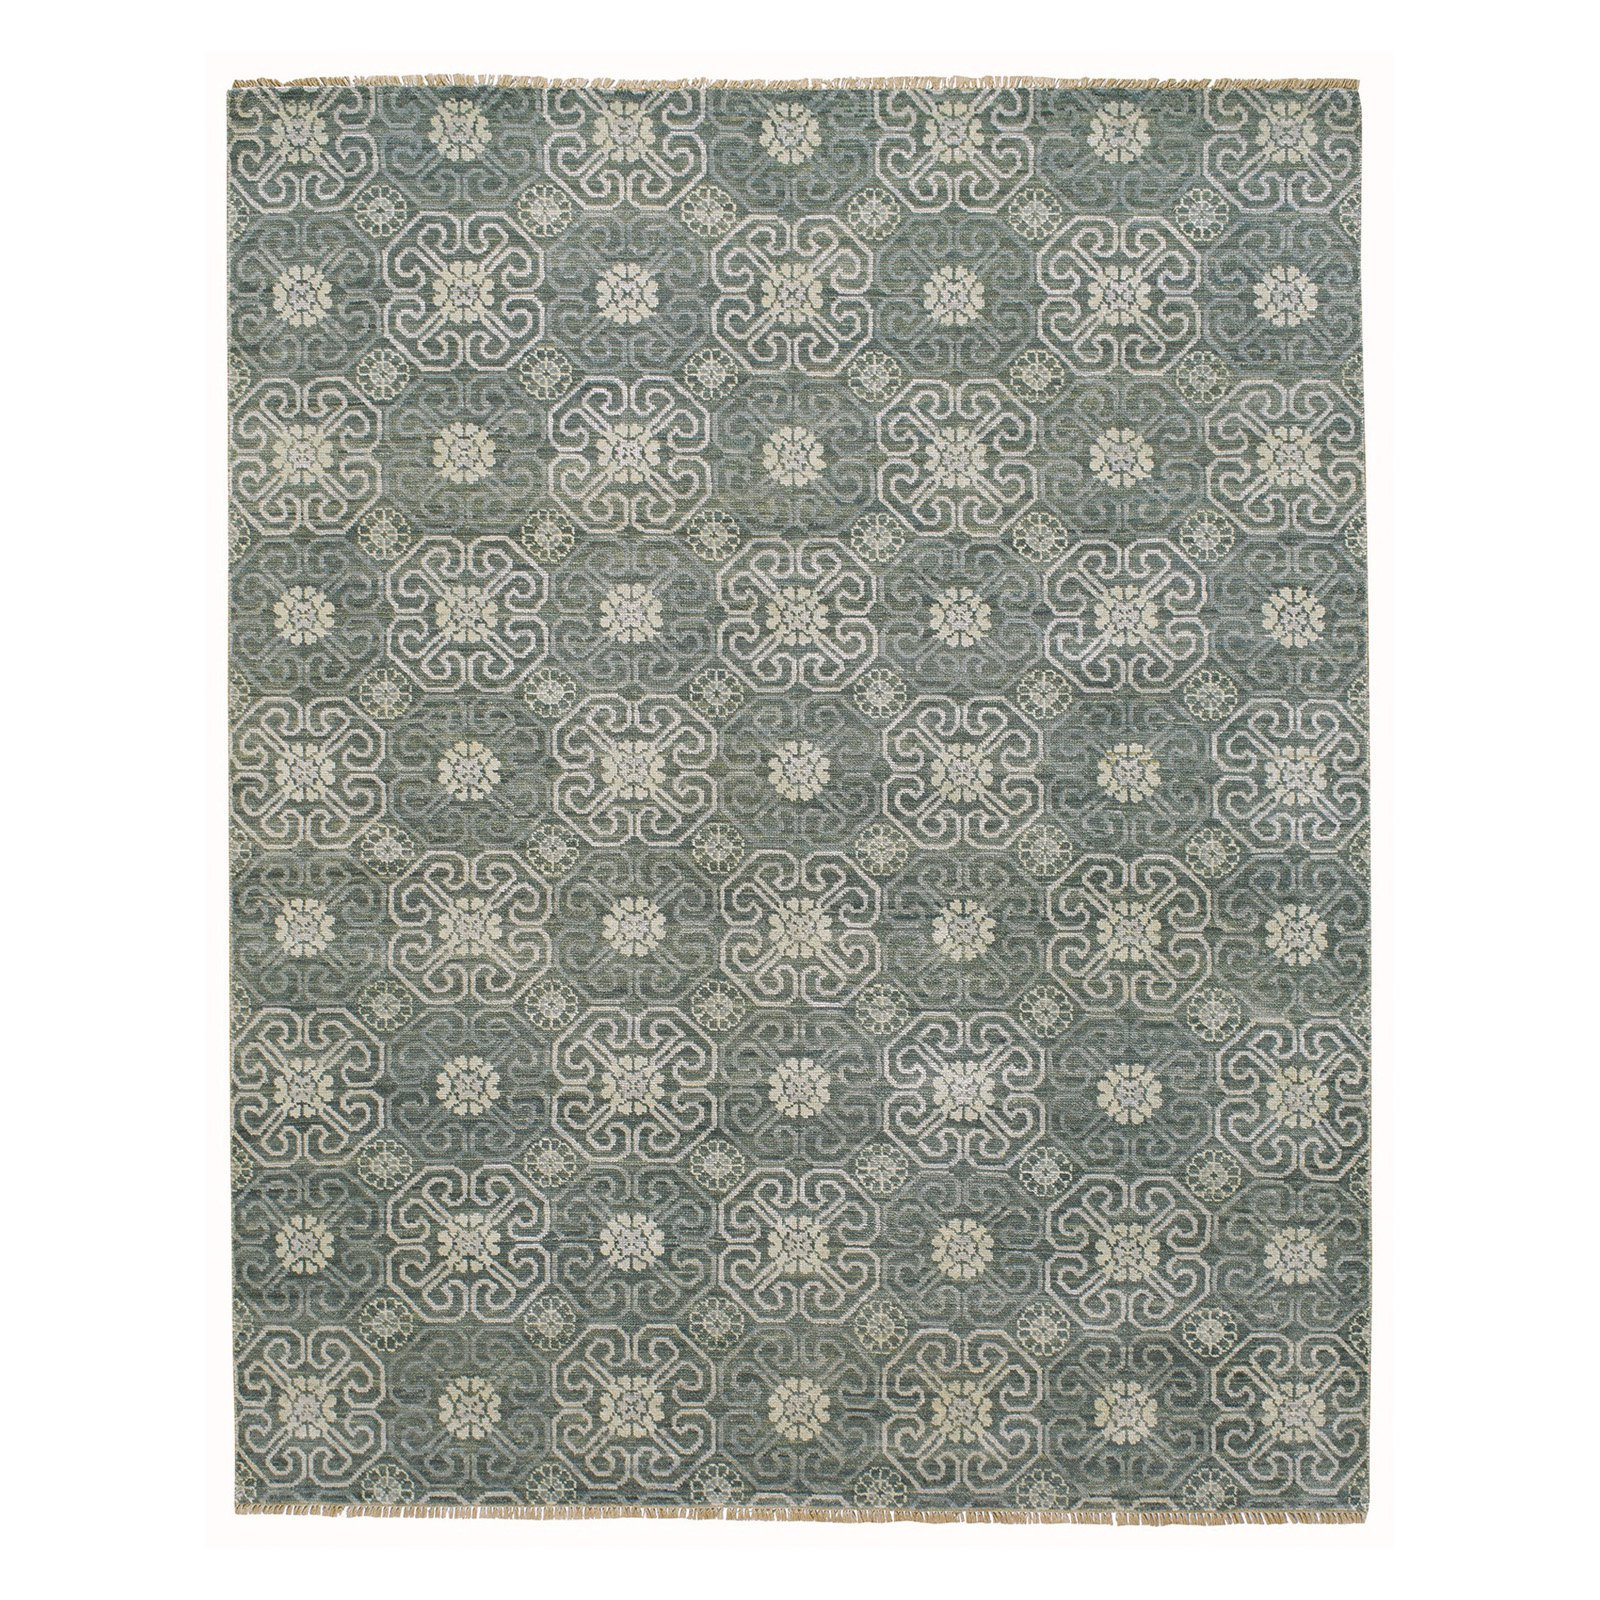 Burmese Flower Hand Knotted Rectangular Area Rug, Assorted Sizes